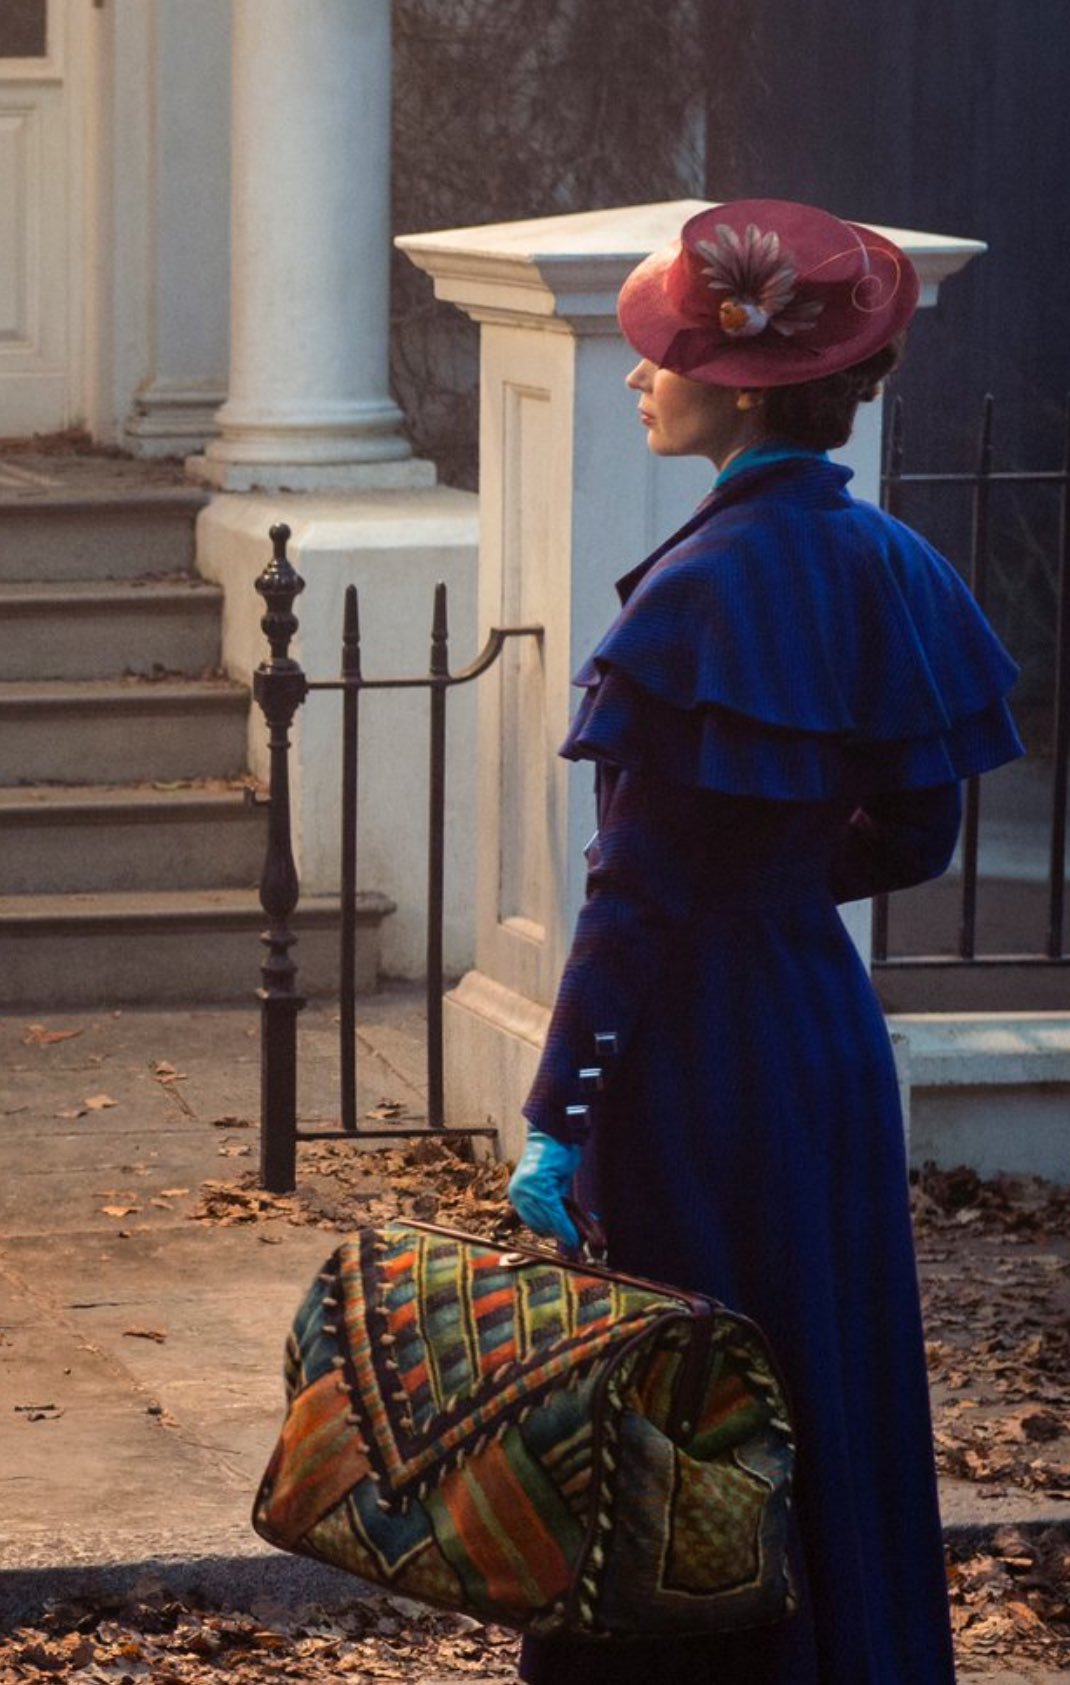 Mary Poppins Returns Emily Blunt Movie Poster